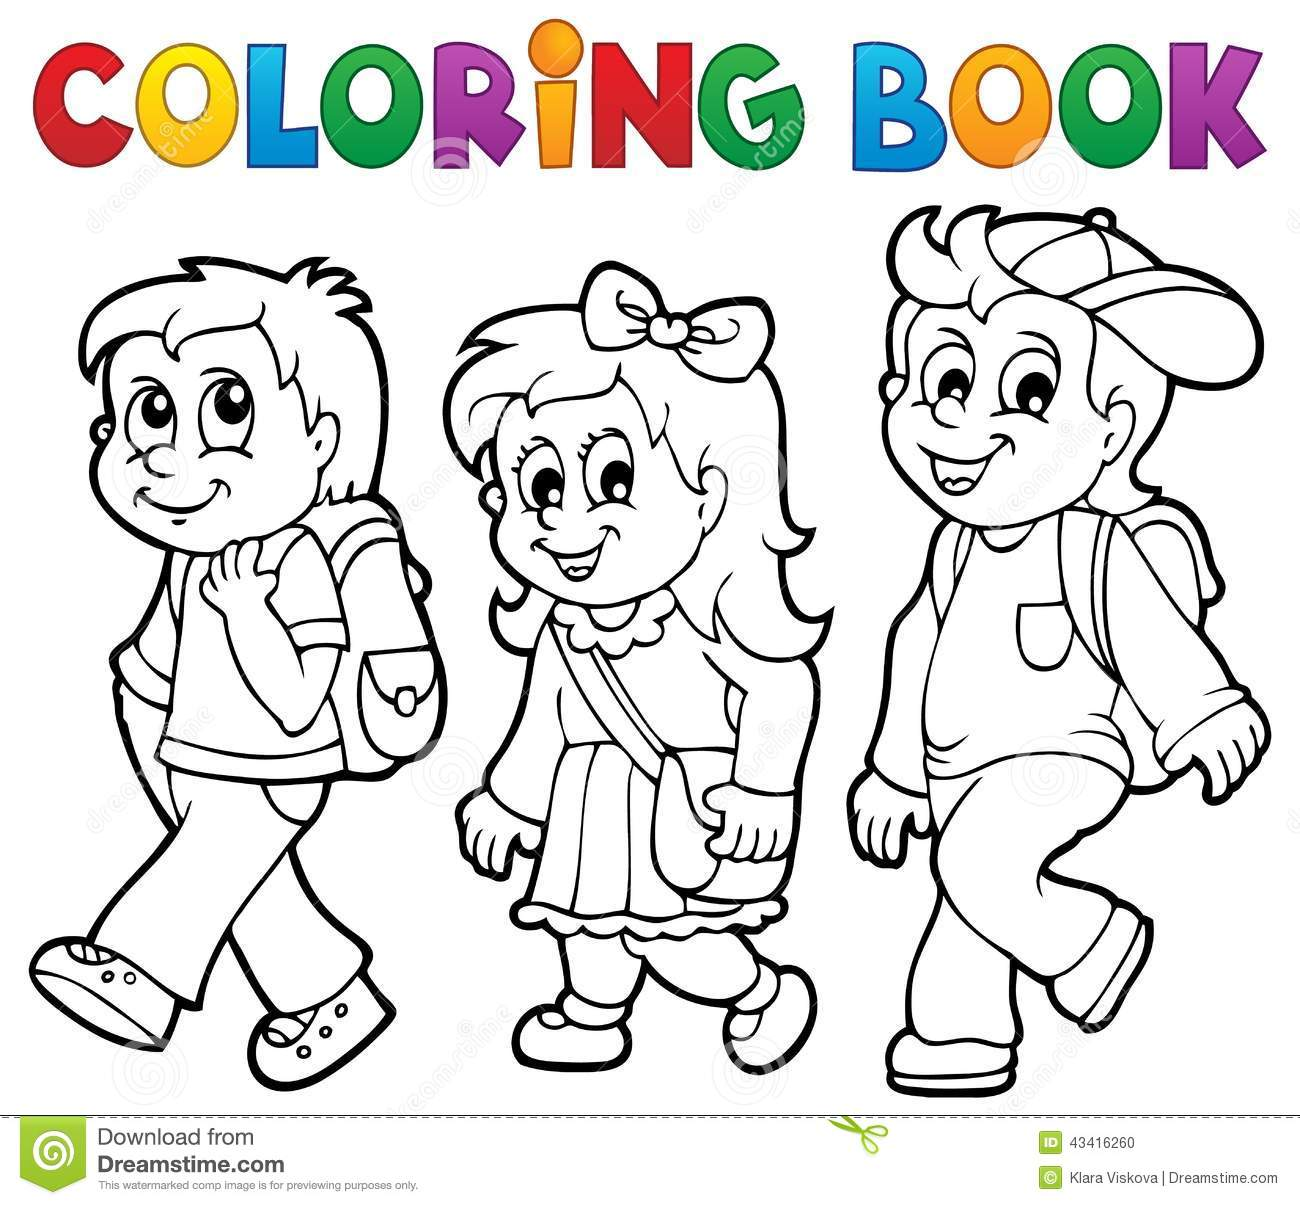 funny children coloring book corruptions 26 kids coloring book - Coloring Pictures Of Children